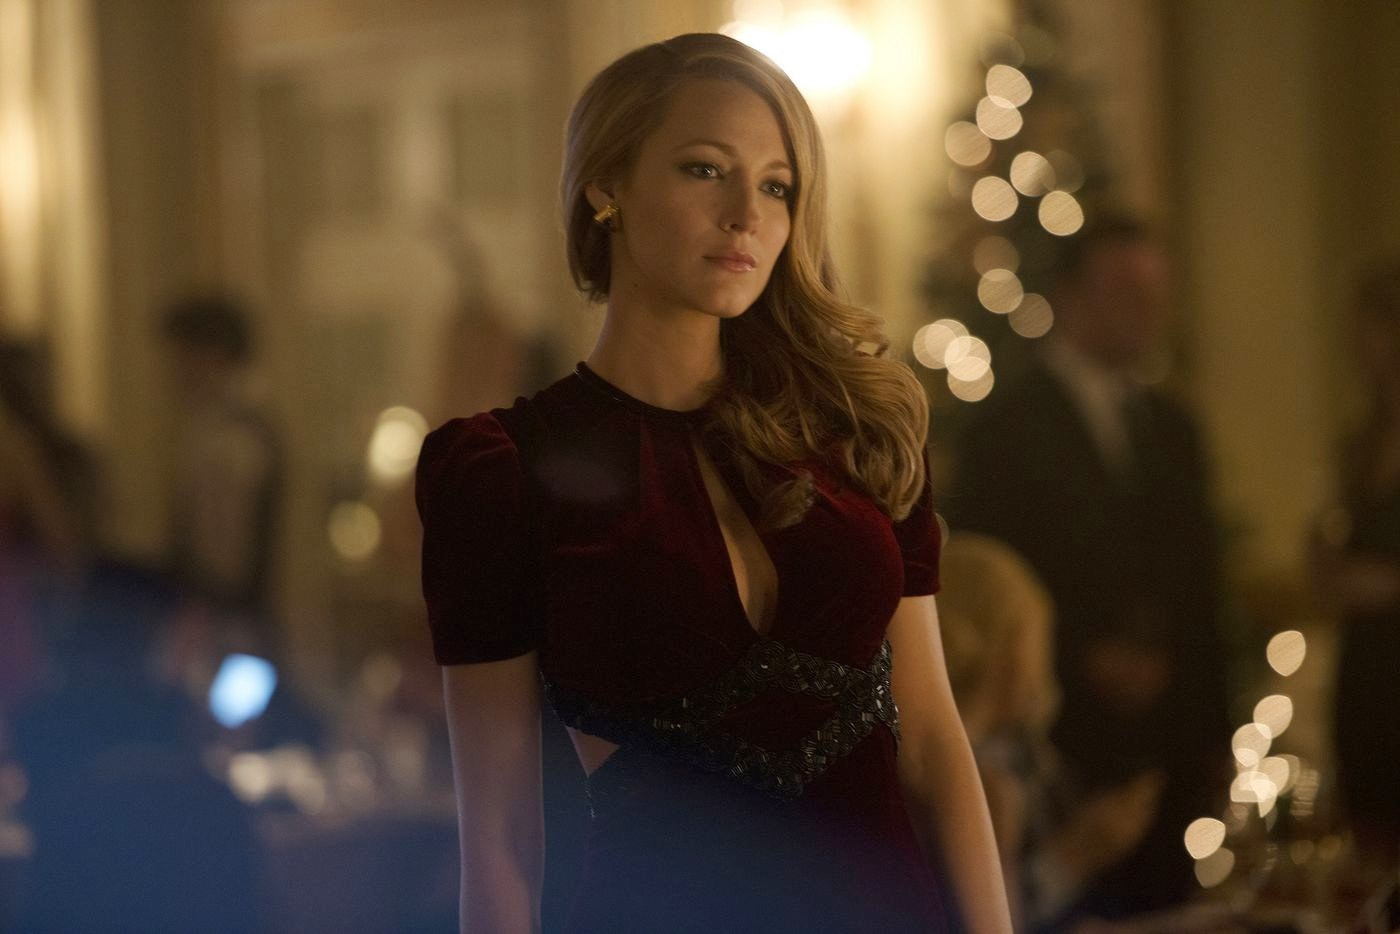 Blake Lively as Adaline Bowman, left unaging following a freak accident in The Age of Adaline (2015)